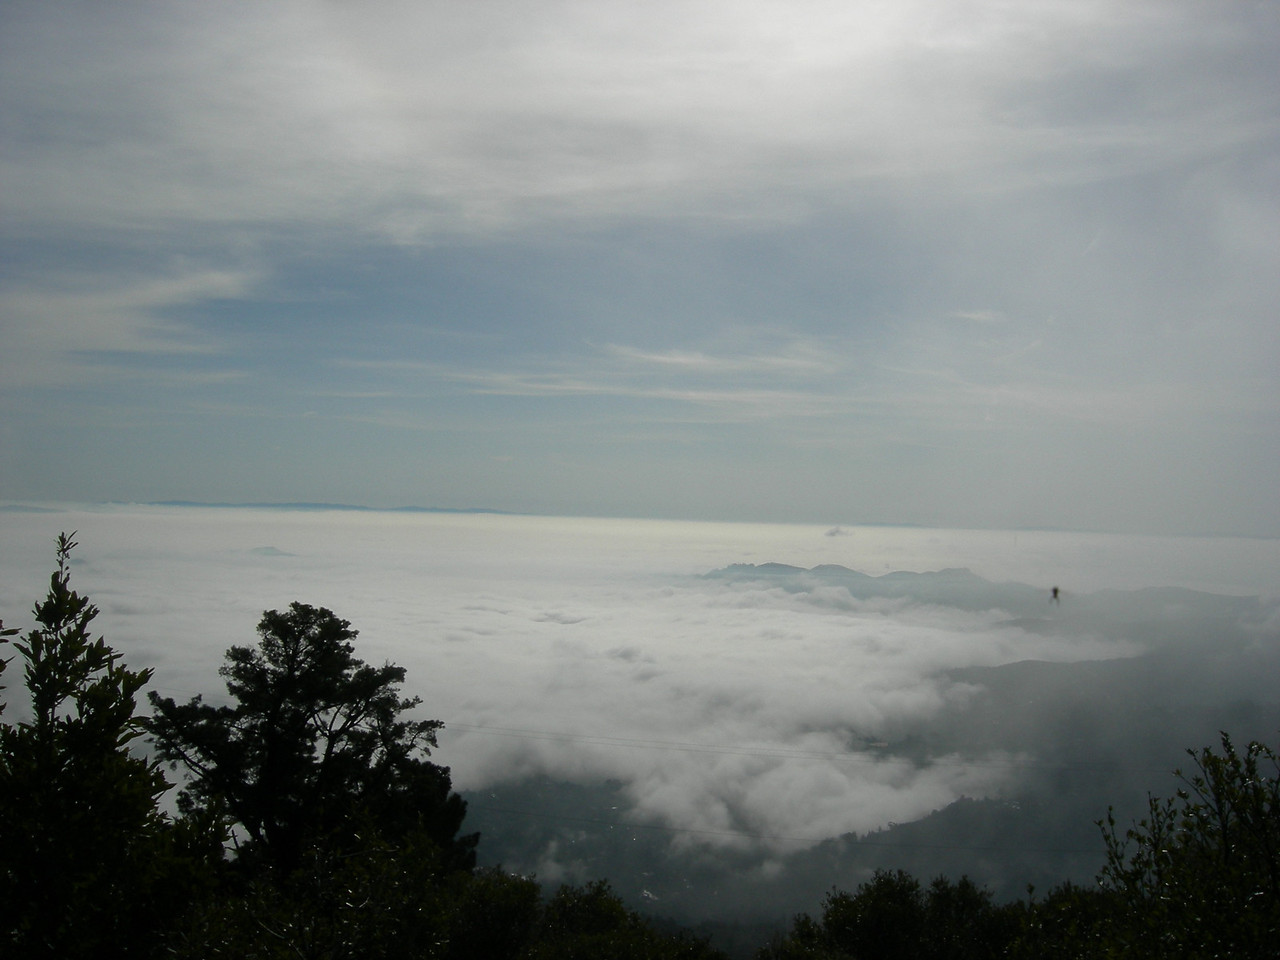 View from Mt. Tamalpais. Sutro Tower can be seen in the distance.